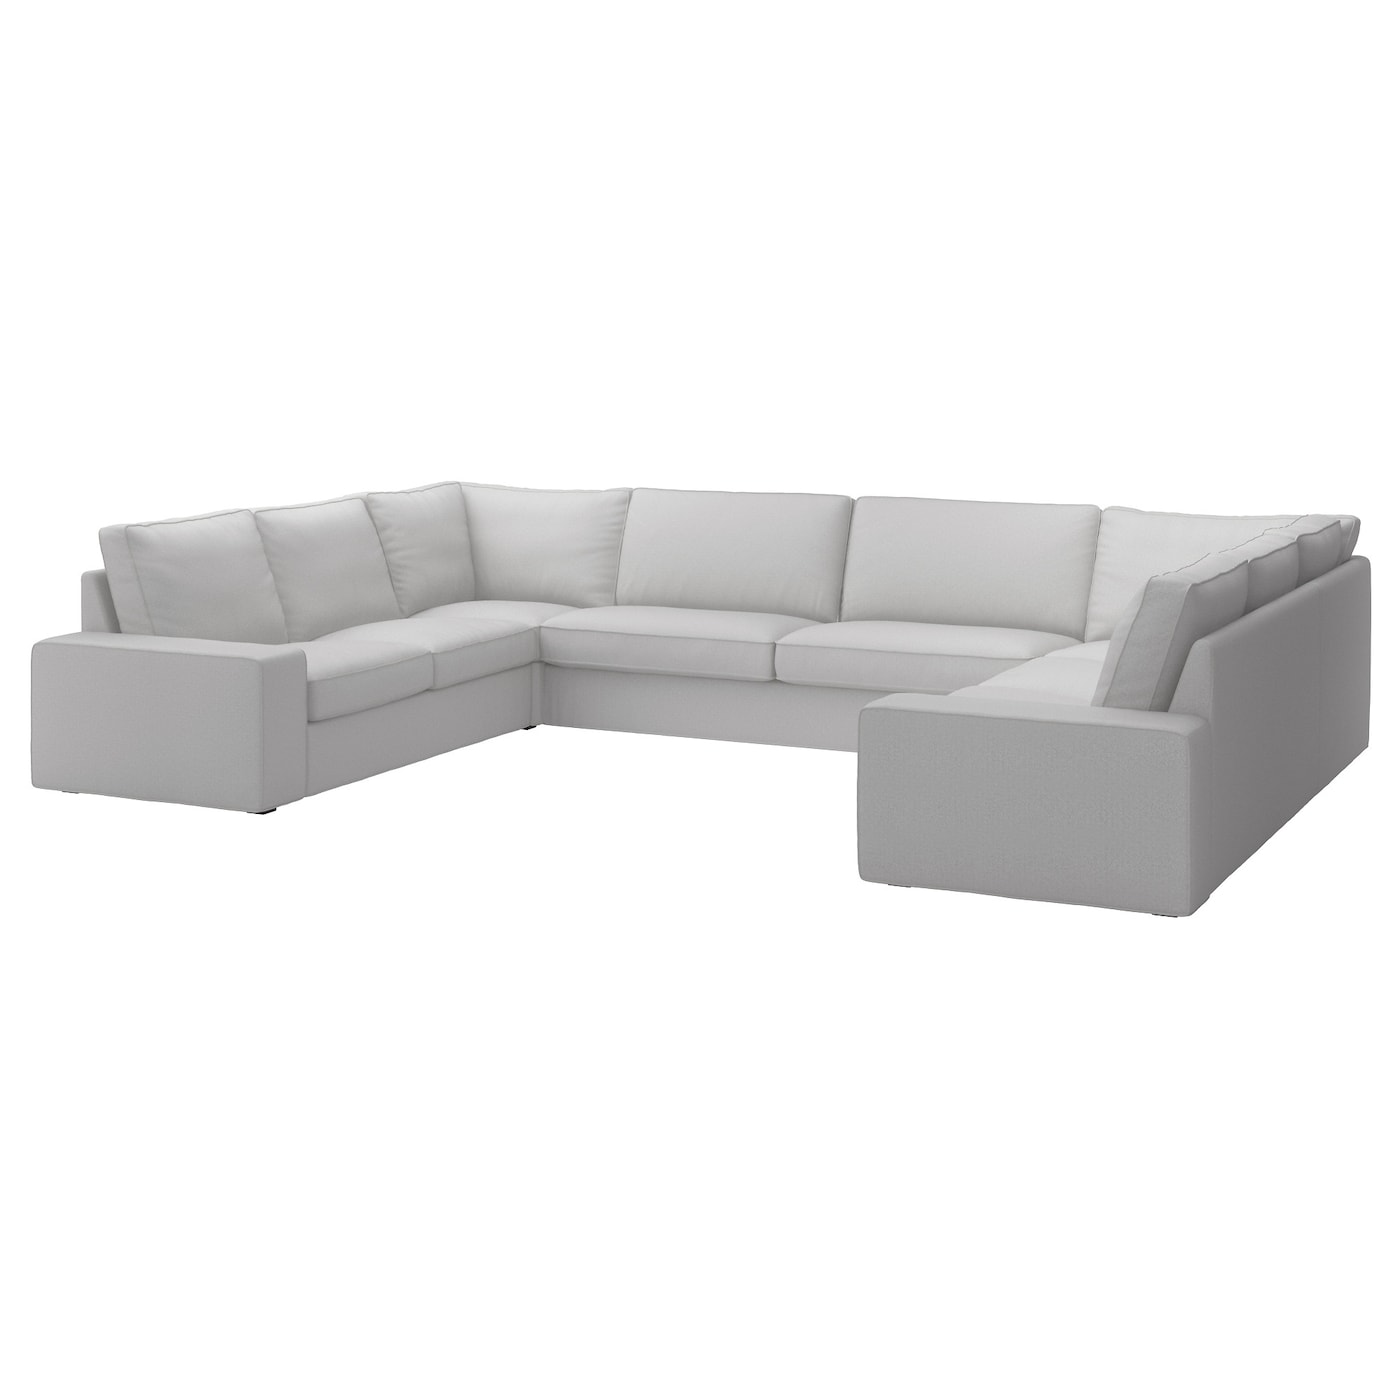 Sofa ikea  KIVIK Sofa, U-shaped 9-seater/ramna light grey - IKEA